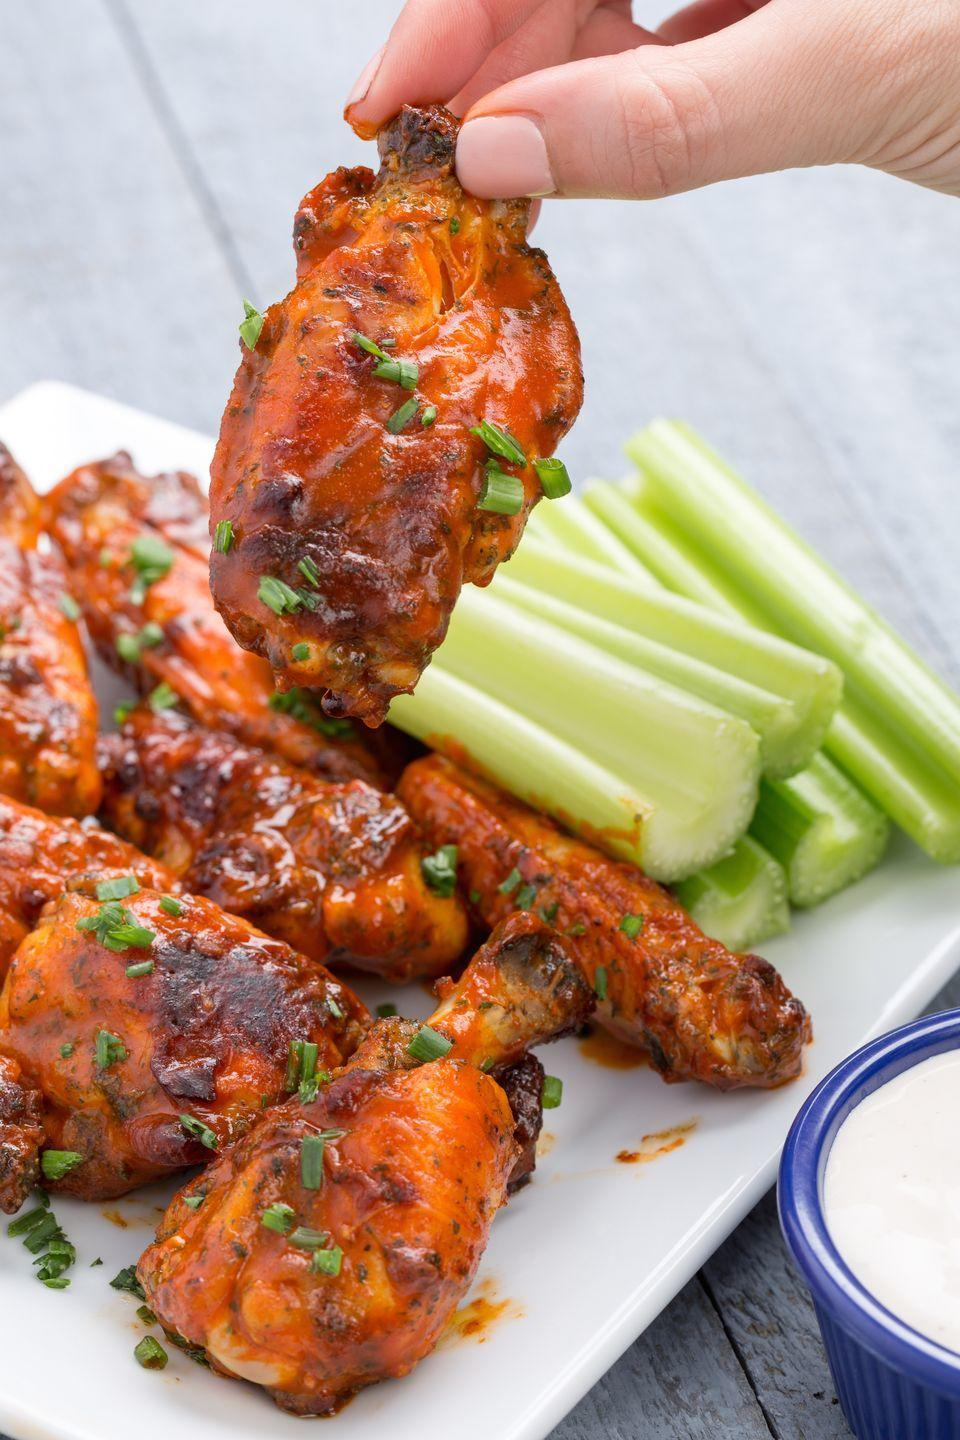 """<p>Any true football fan knows that Game Day isn't complete without buffalo ranch <em>something</em>. These are doused in ranch seasoning and sprinkled with fresh chives for extra flavor.</p><p>Get the recipe from <a href=""""https://www.delish.com/cooking/recipe-ideas/recipes/a44367/slow-cooker-buffalo-ranch-wings-recipe/"""" rel=""""nofollow noopener"""" target=""""_blank"""" data-ylk=""""slk:Delish"""" class=""""link rapid-noclick-resp"""">Delish</a>. </p>"""